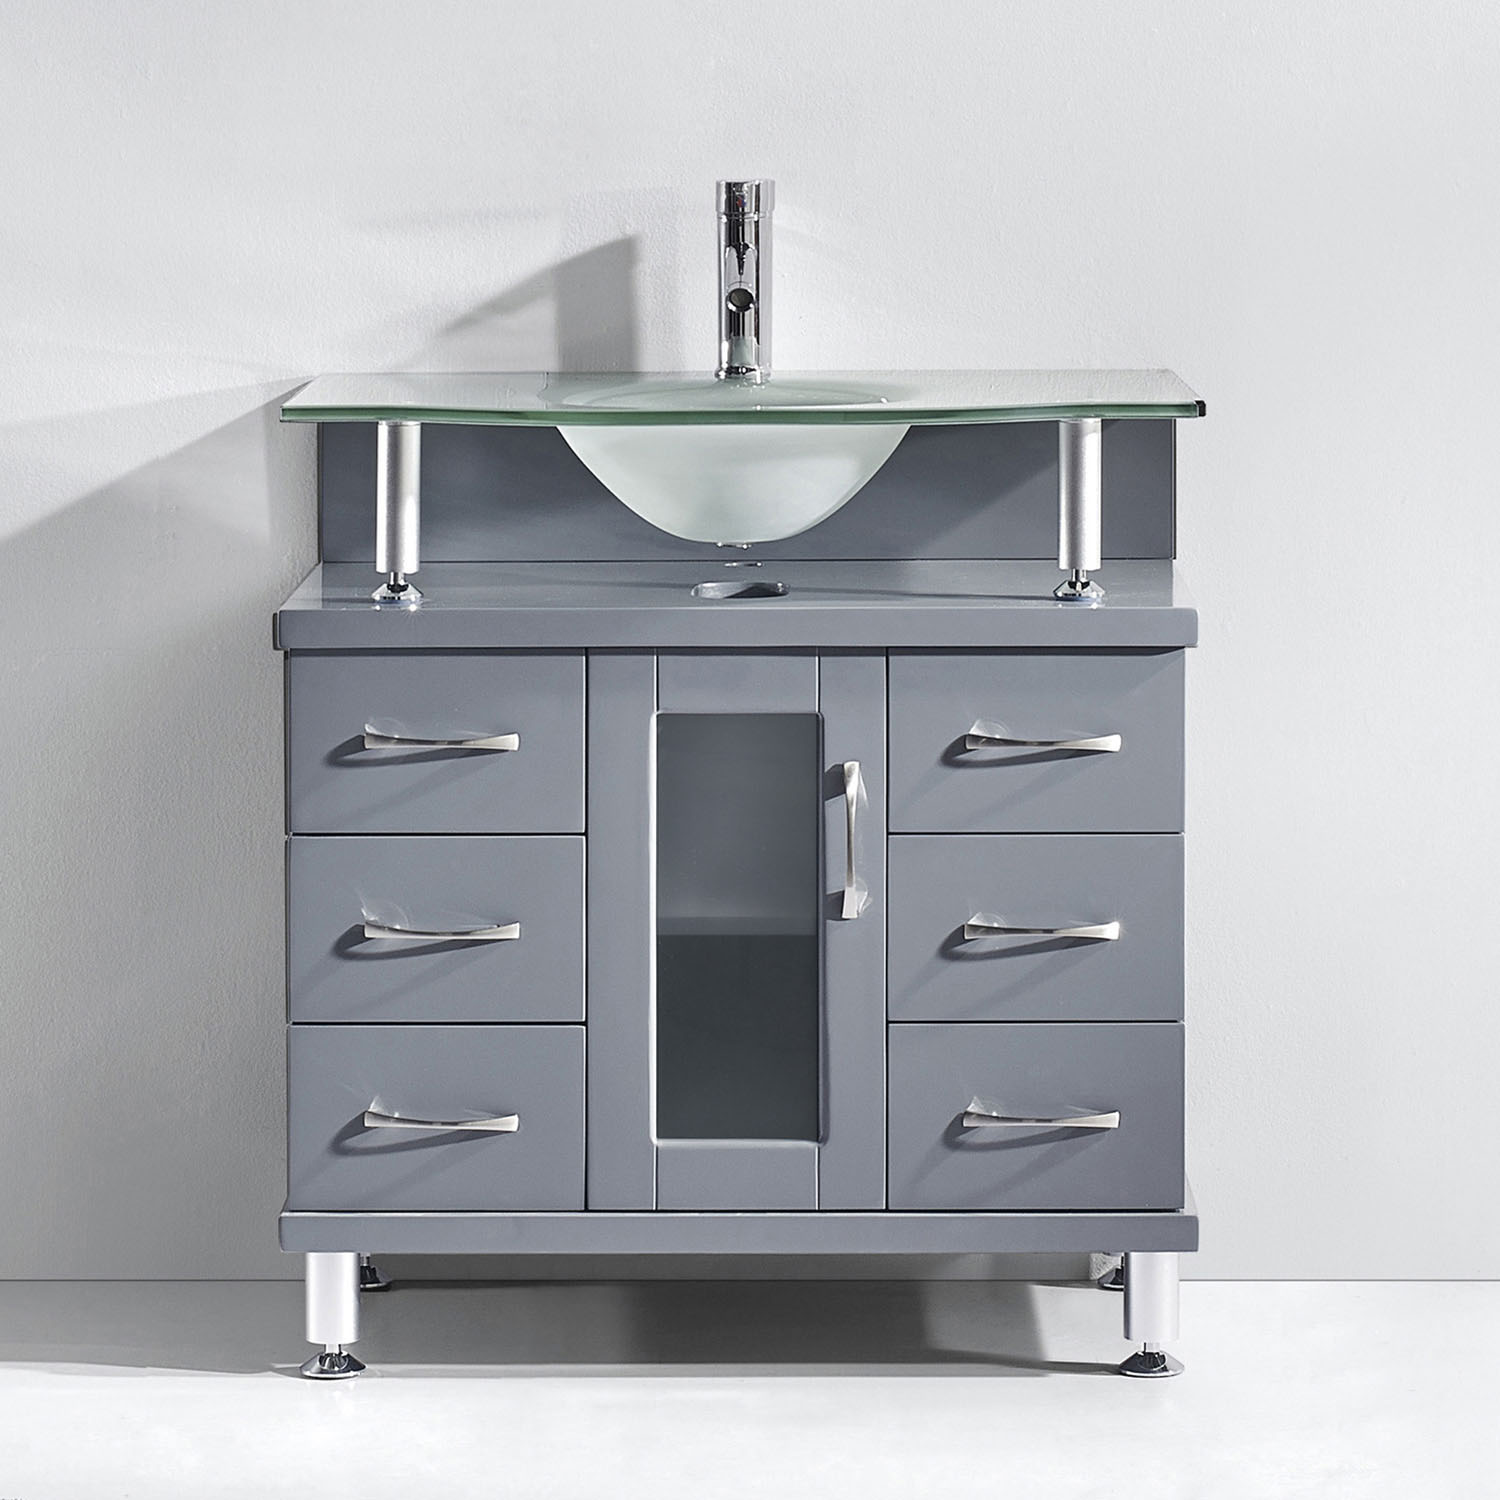 Virtu USA - MS-32-FG-GR - Vincente 32 in. Bathroom Vanity Set in Gray